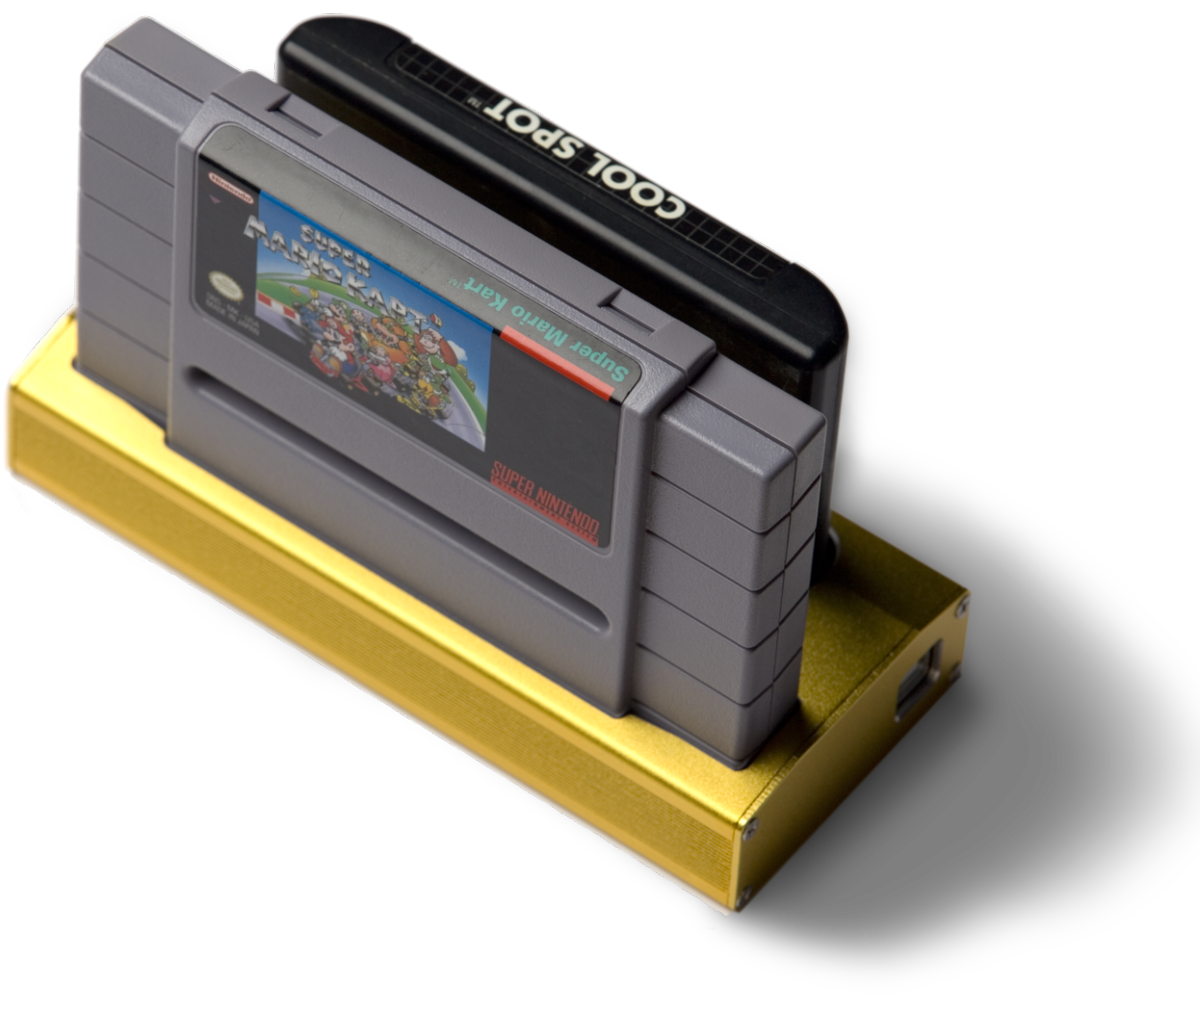 Retrode Rips Roms From Old Game Carts Tom S Guide